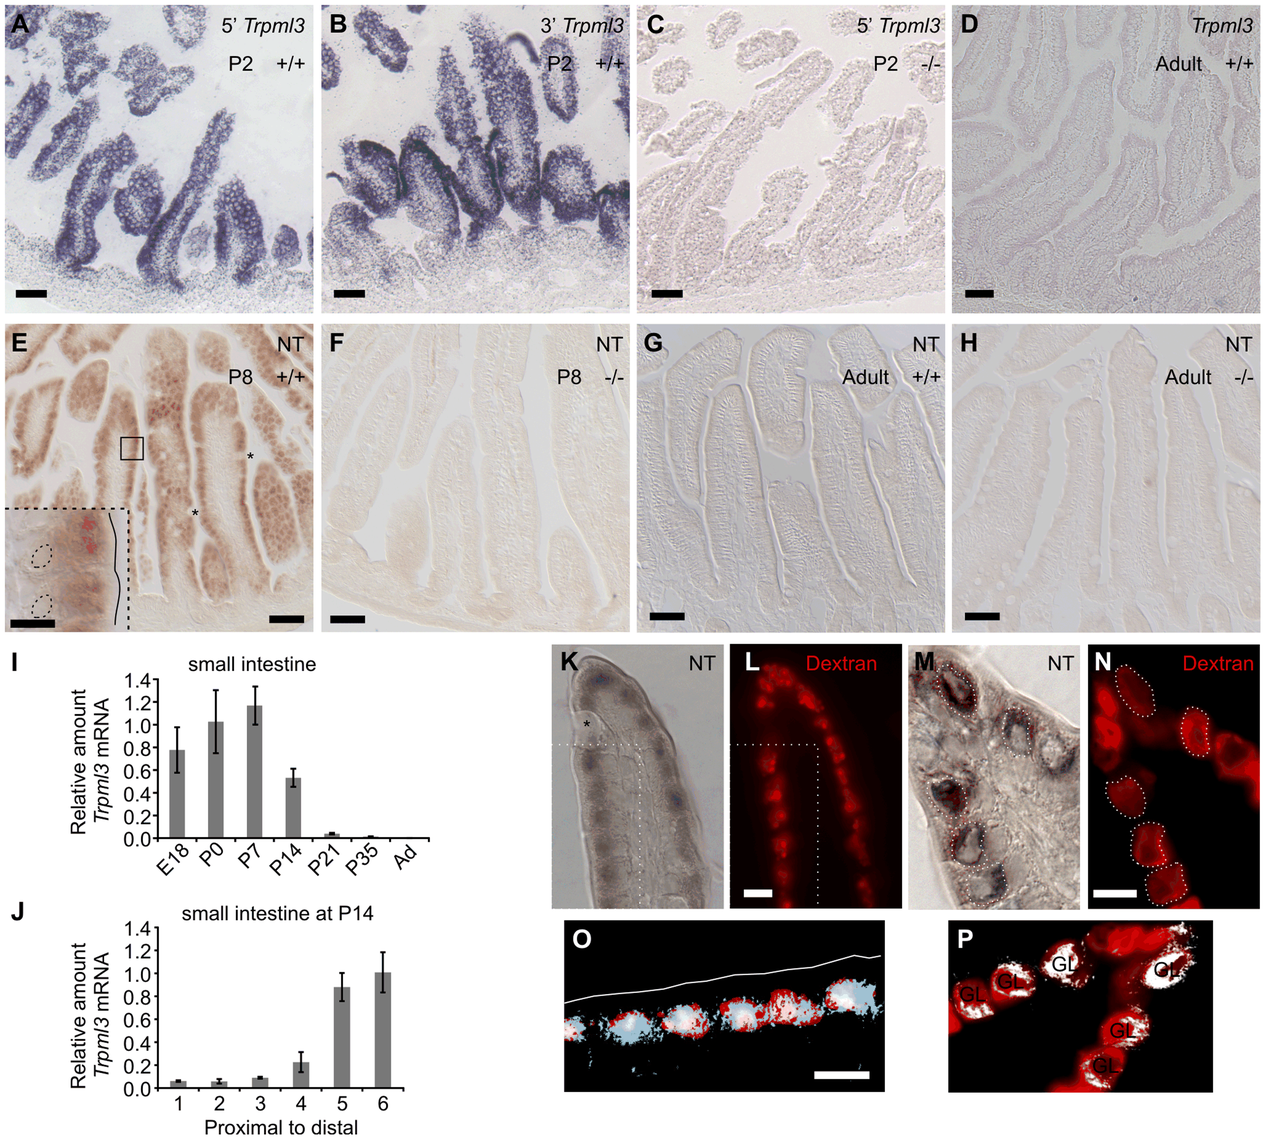 Intestinal enterocytes express <i>Trpml3</i> specifically during the suckling period and accumulate TRPML3 protein in their specialized endolysosomal organelles.